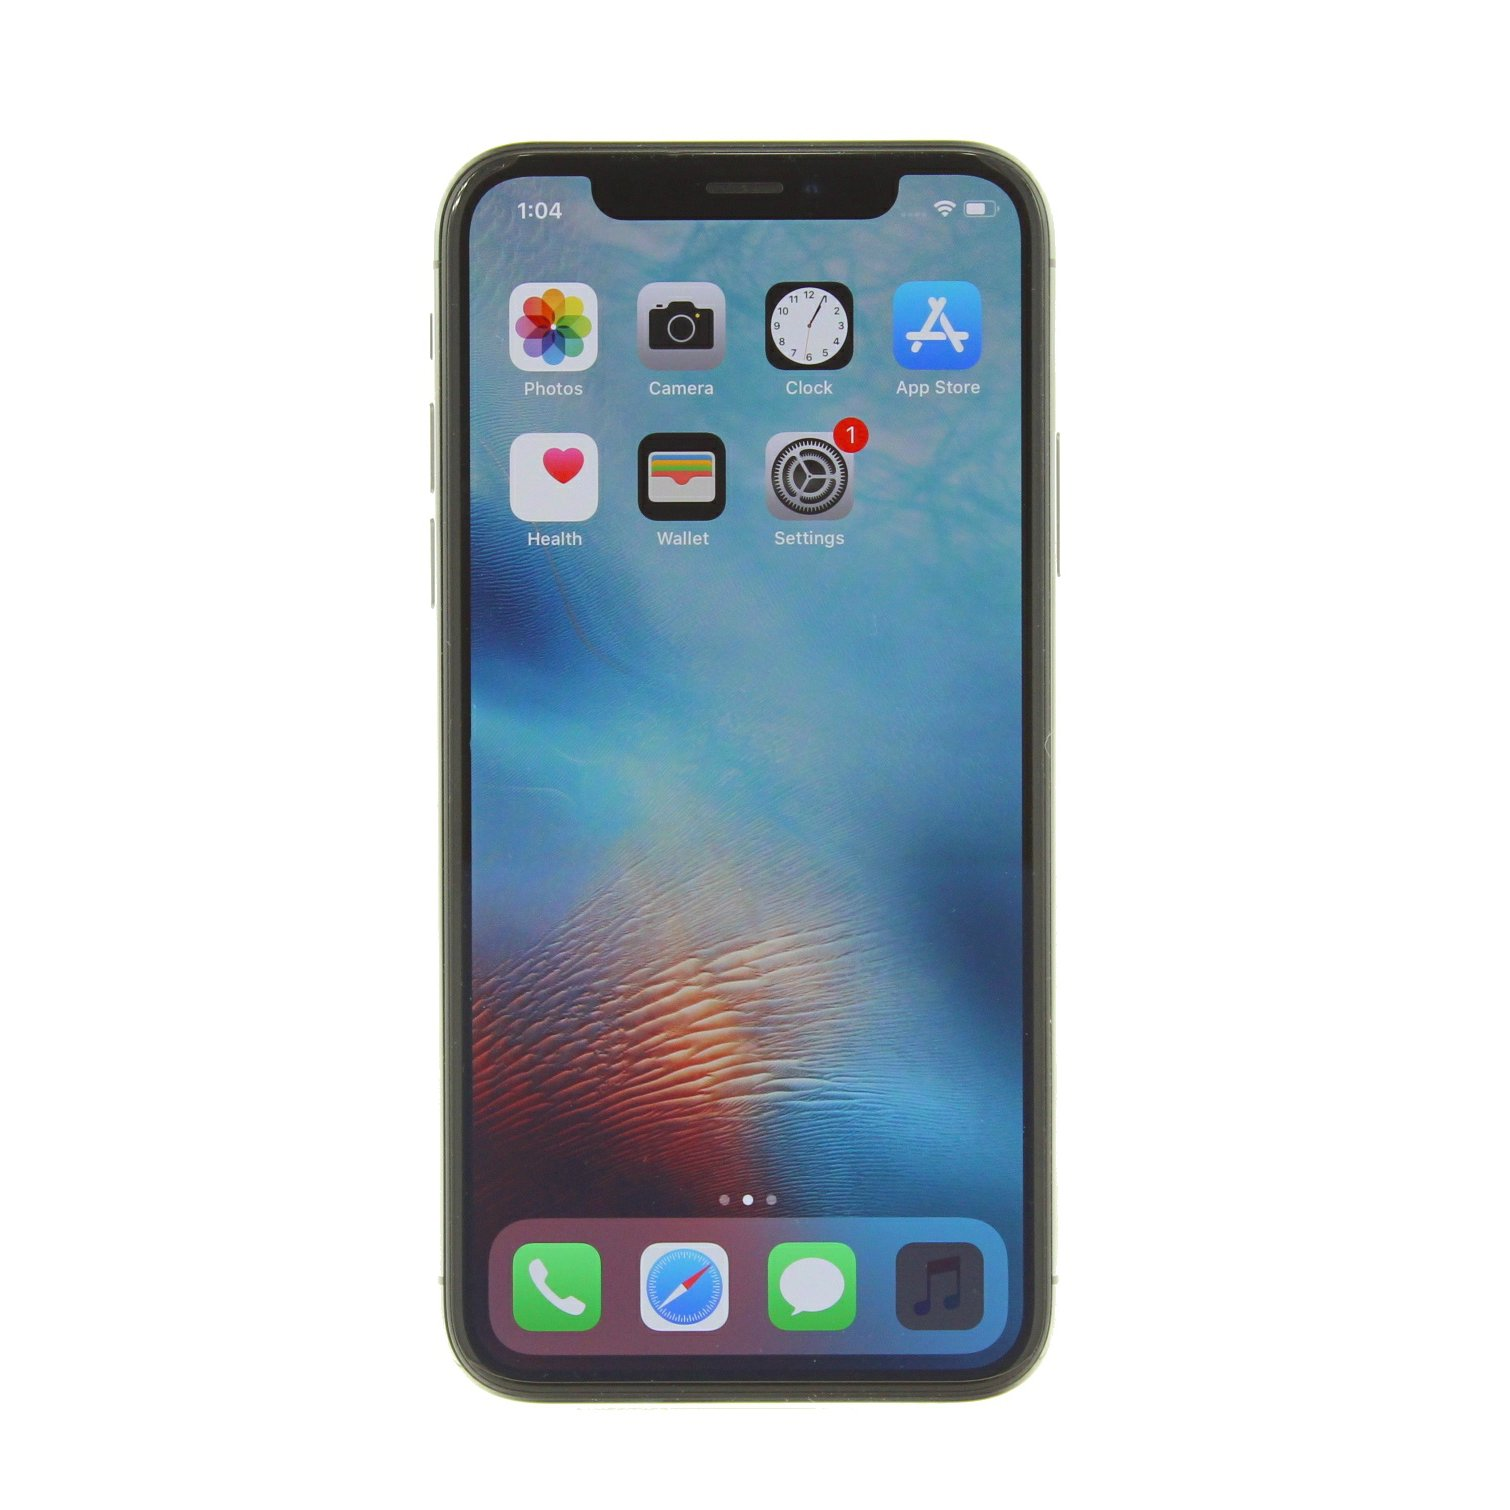 Apple iPhone X, AT&T, 64 GB - Space Gray (Renewed) by Apple